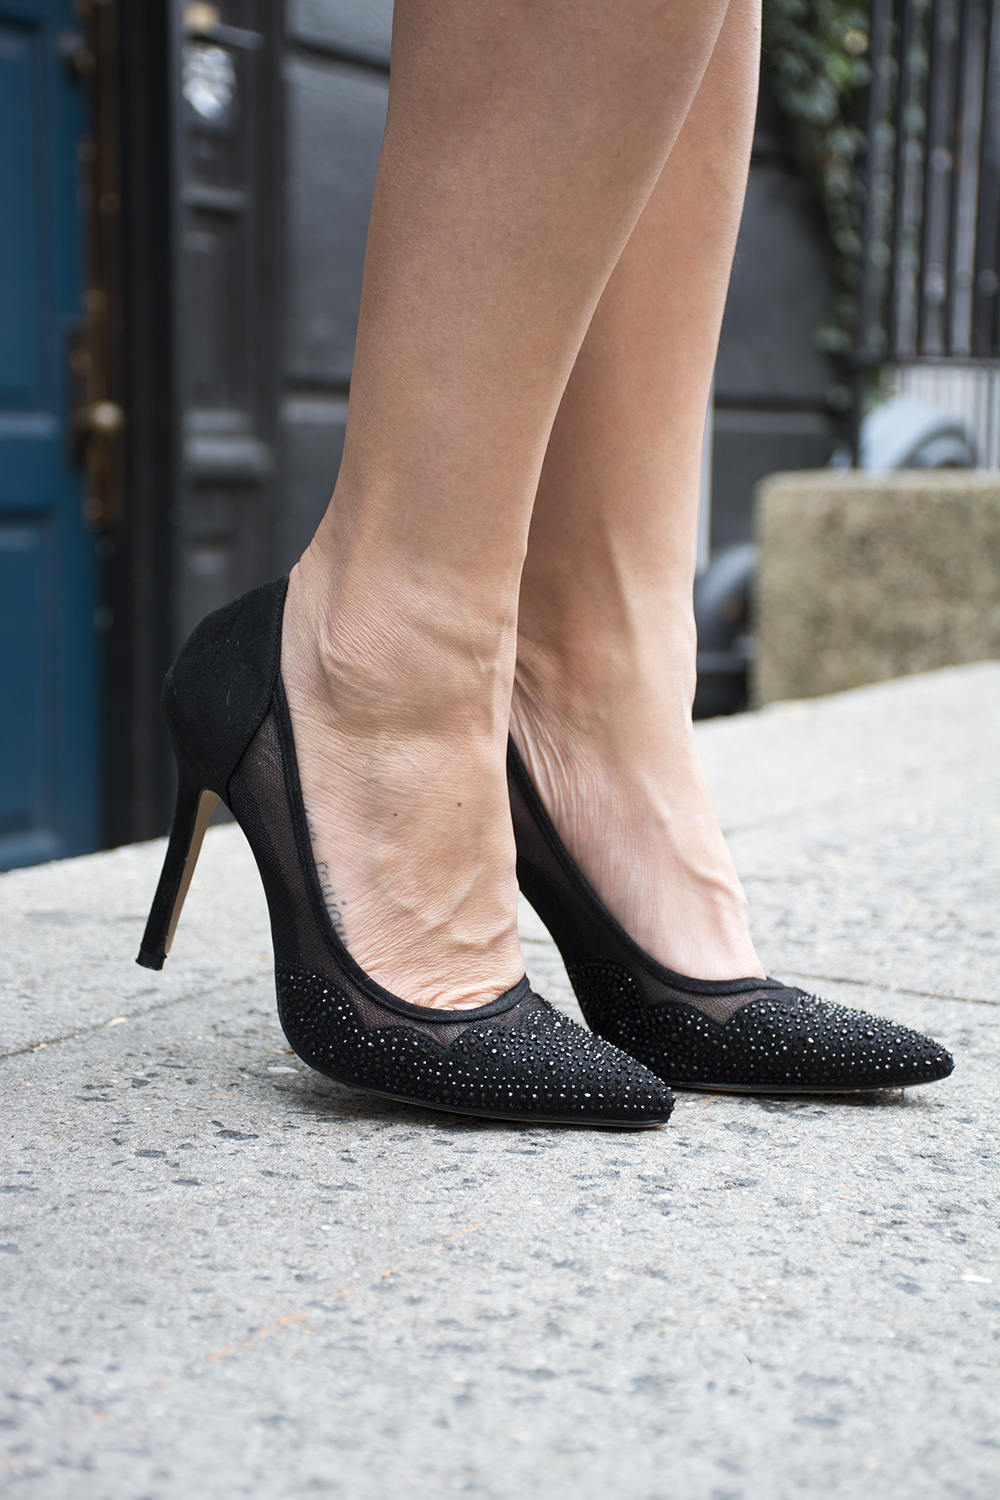 12nyc-scallop-black-heels-style-fashion